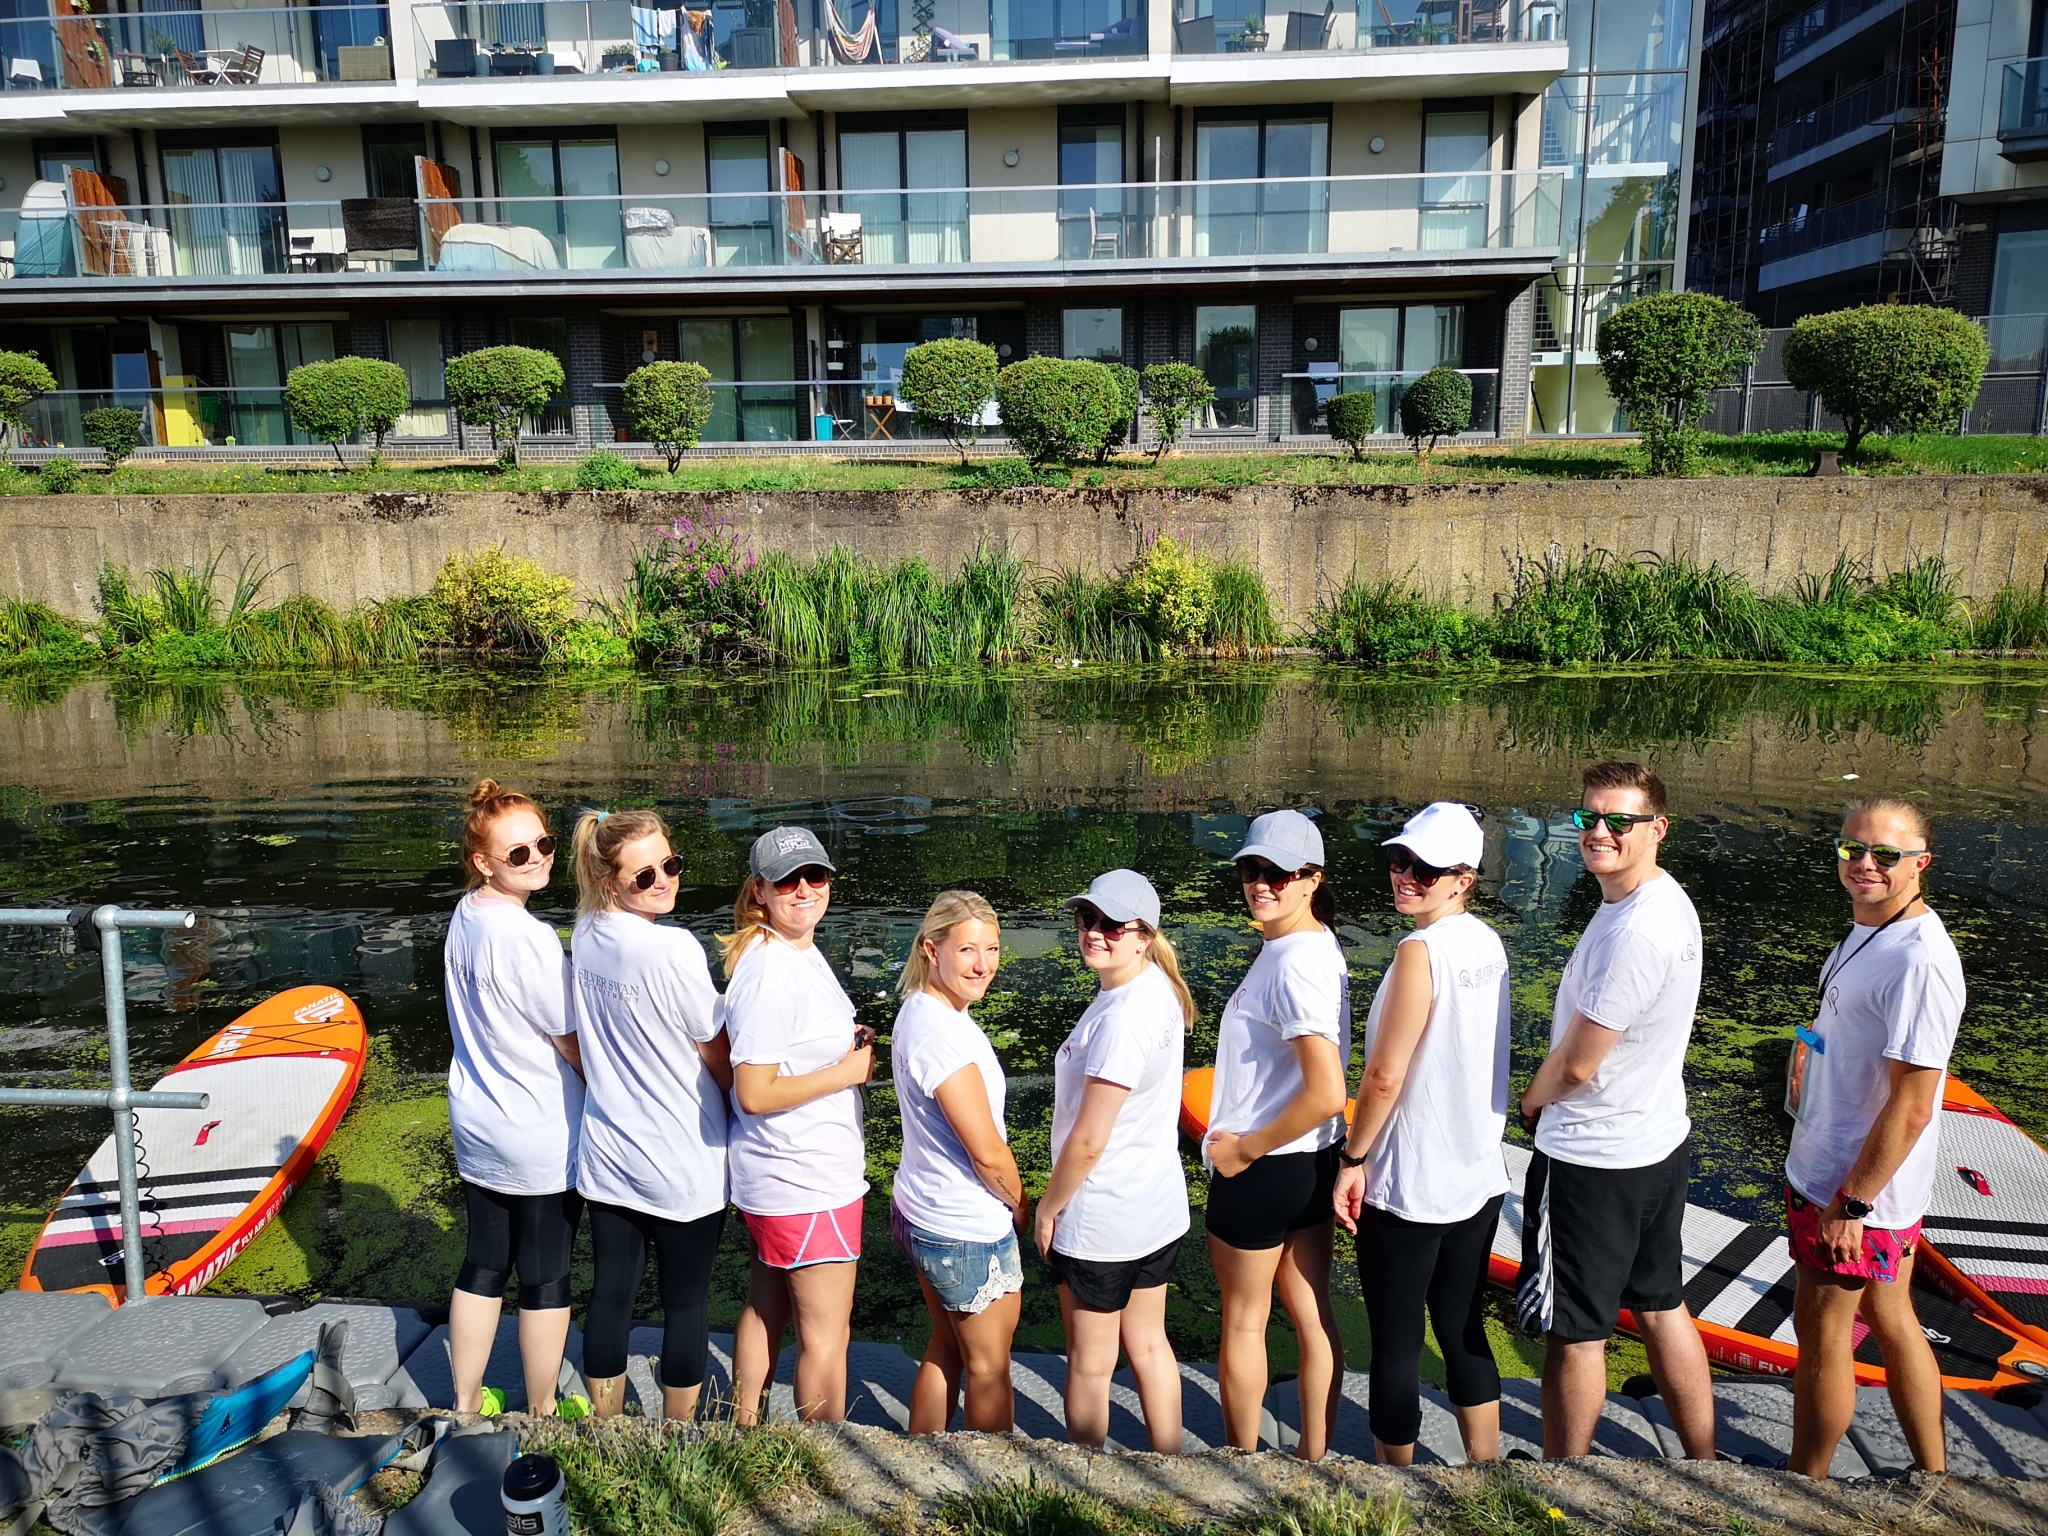 Group of people on the edge of a London canal looking back at the camera